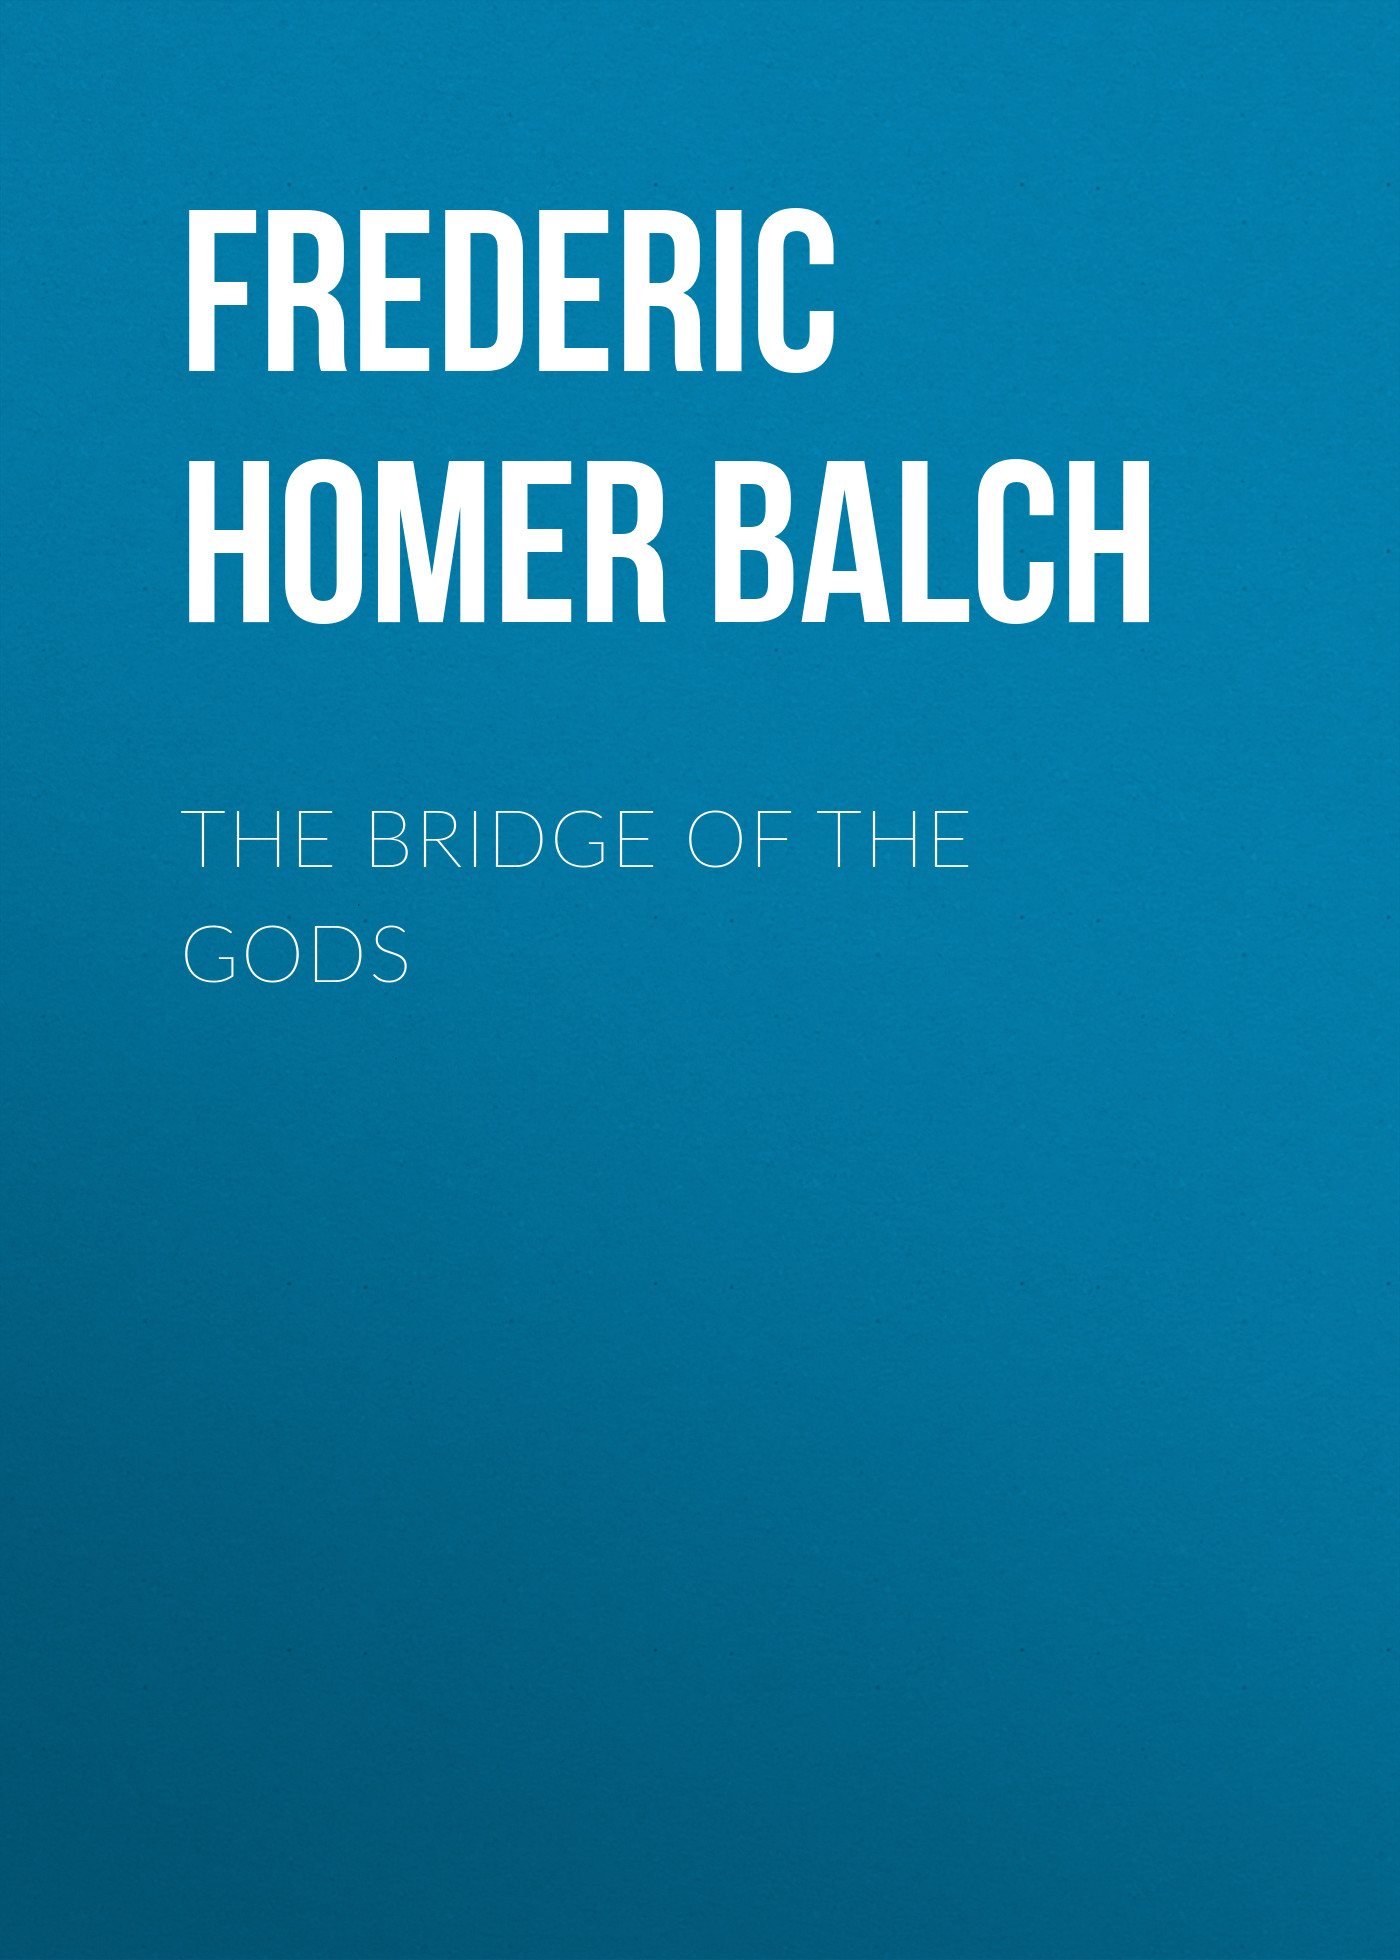 Frederic Homer Balch The Bridge of the Gods nazca aztec spirits return of the gods